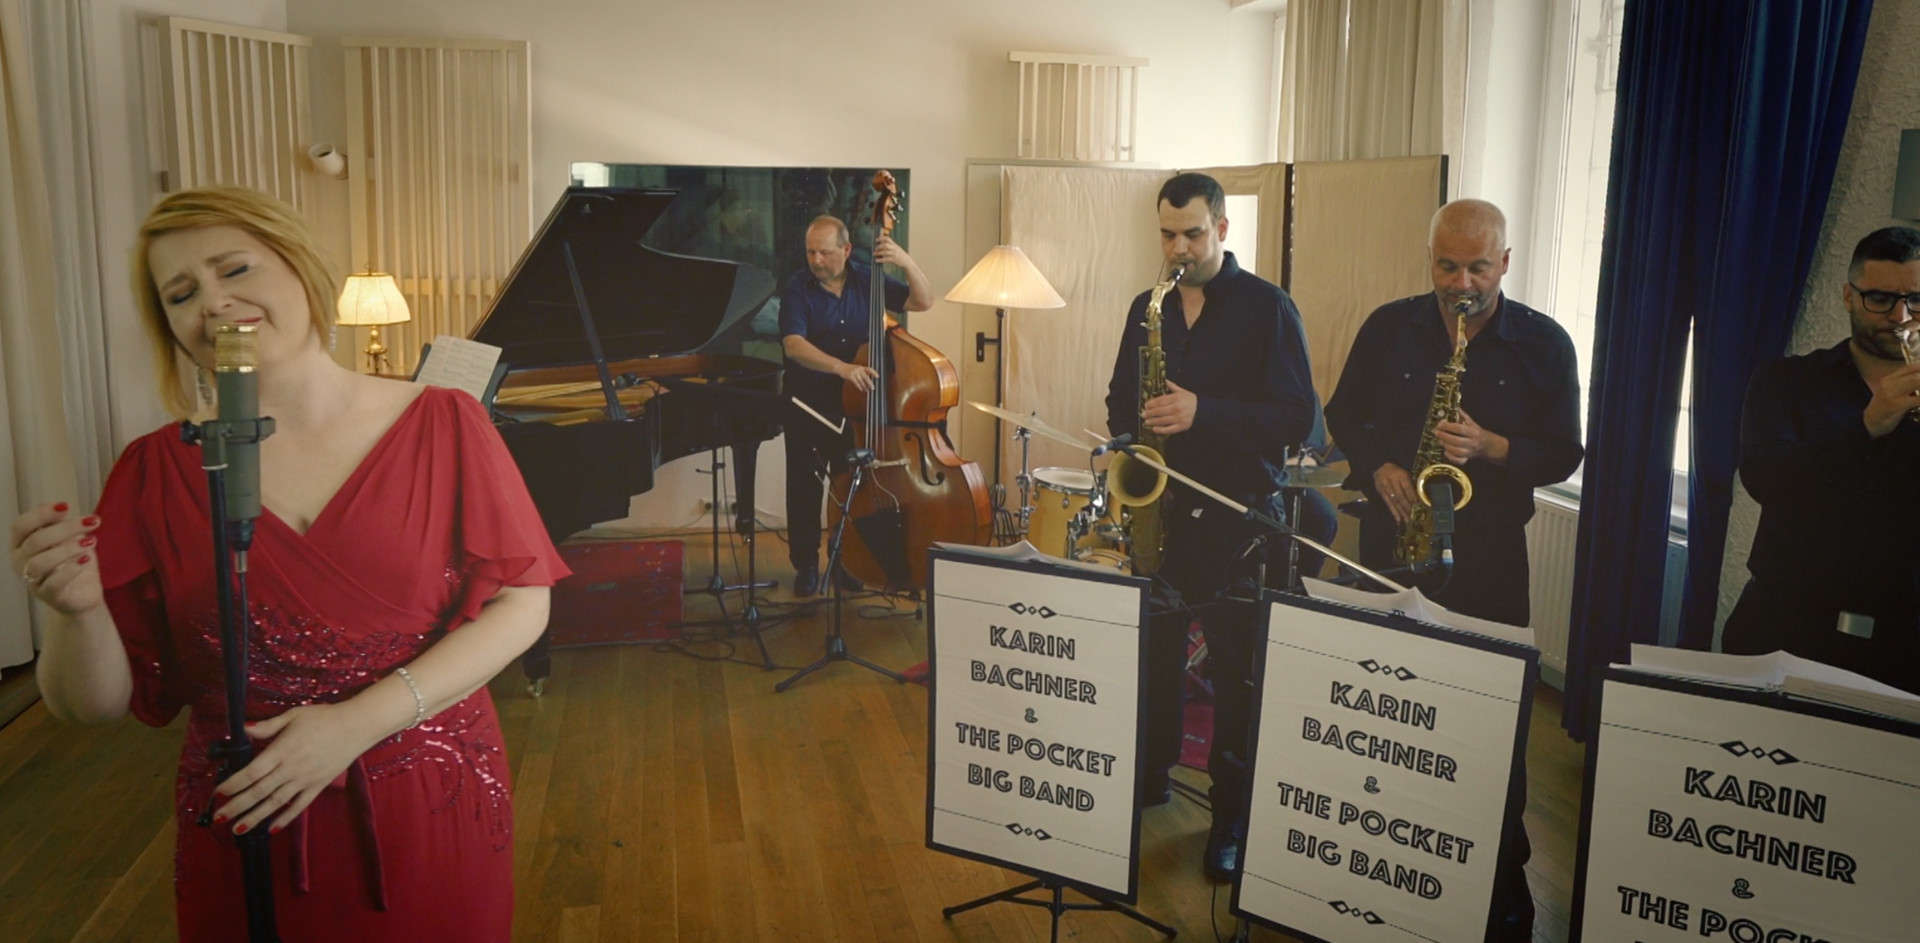 Karin Bachner & The Pocket Big Band